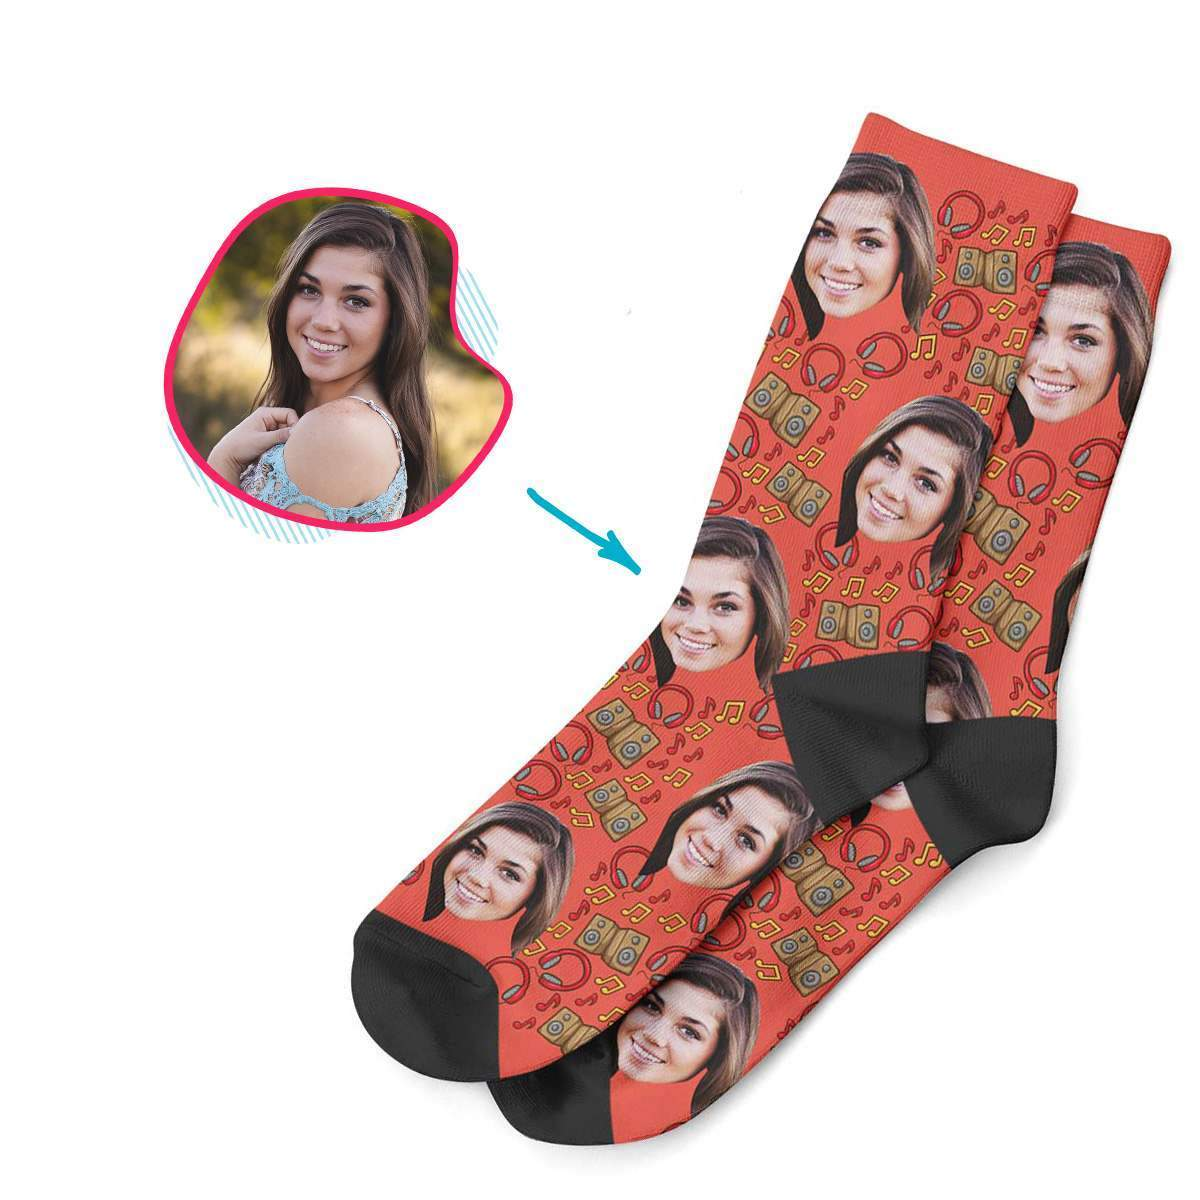 red Music socks personalized with photo of face printed on them